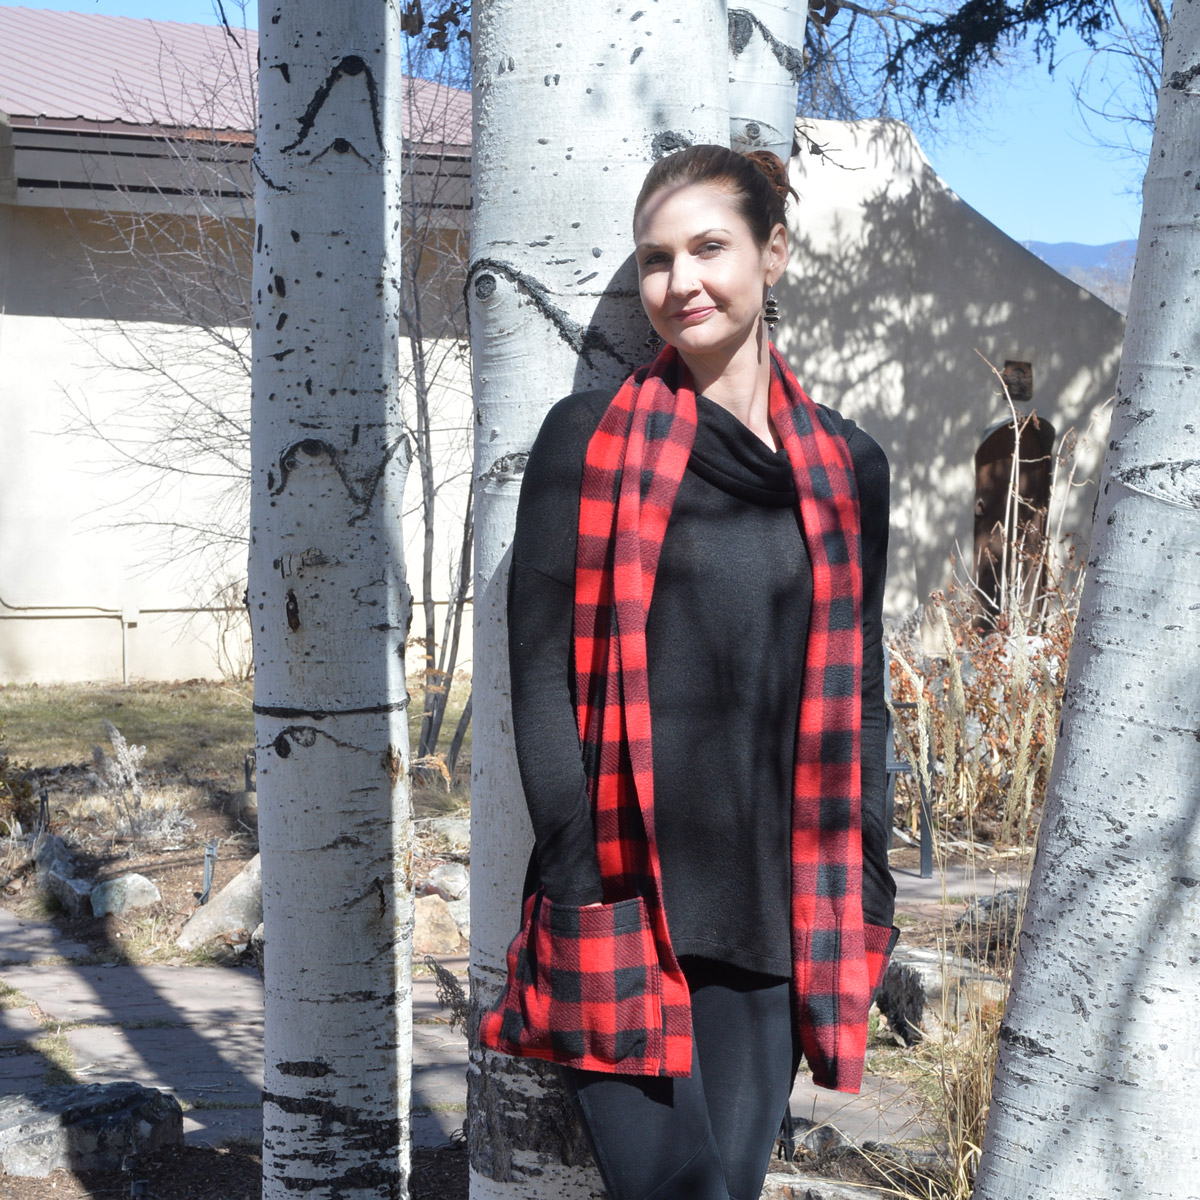 KangarooGirls™ Red Buffalo Plaid Fleece Pocket Scarf © Gail Russell Art & Apparel, Taos, New Mexico